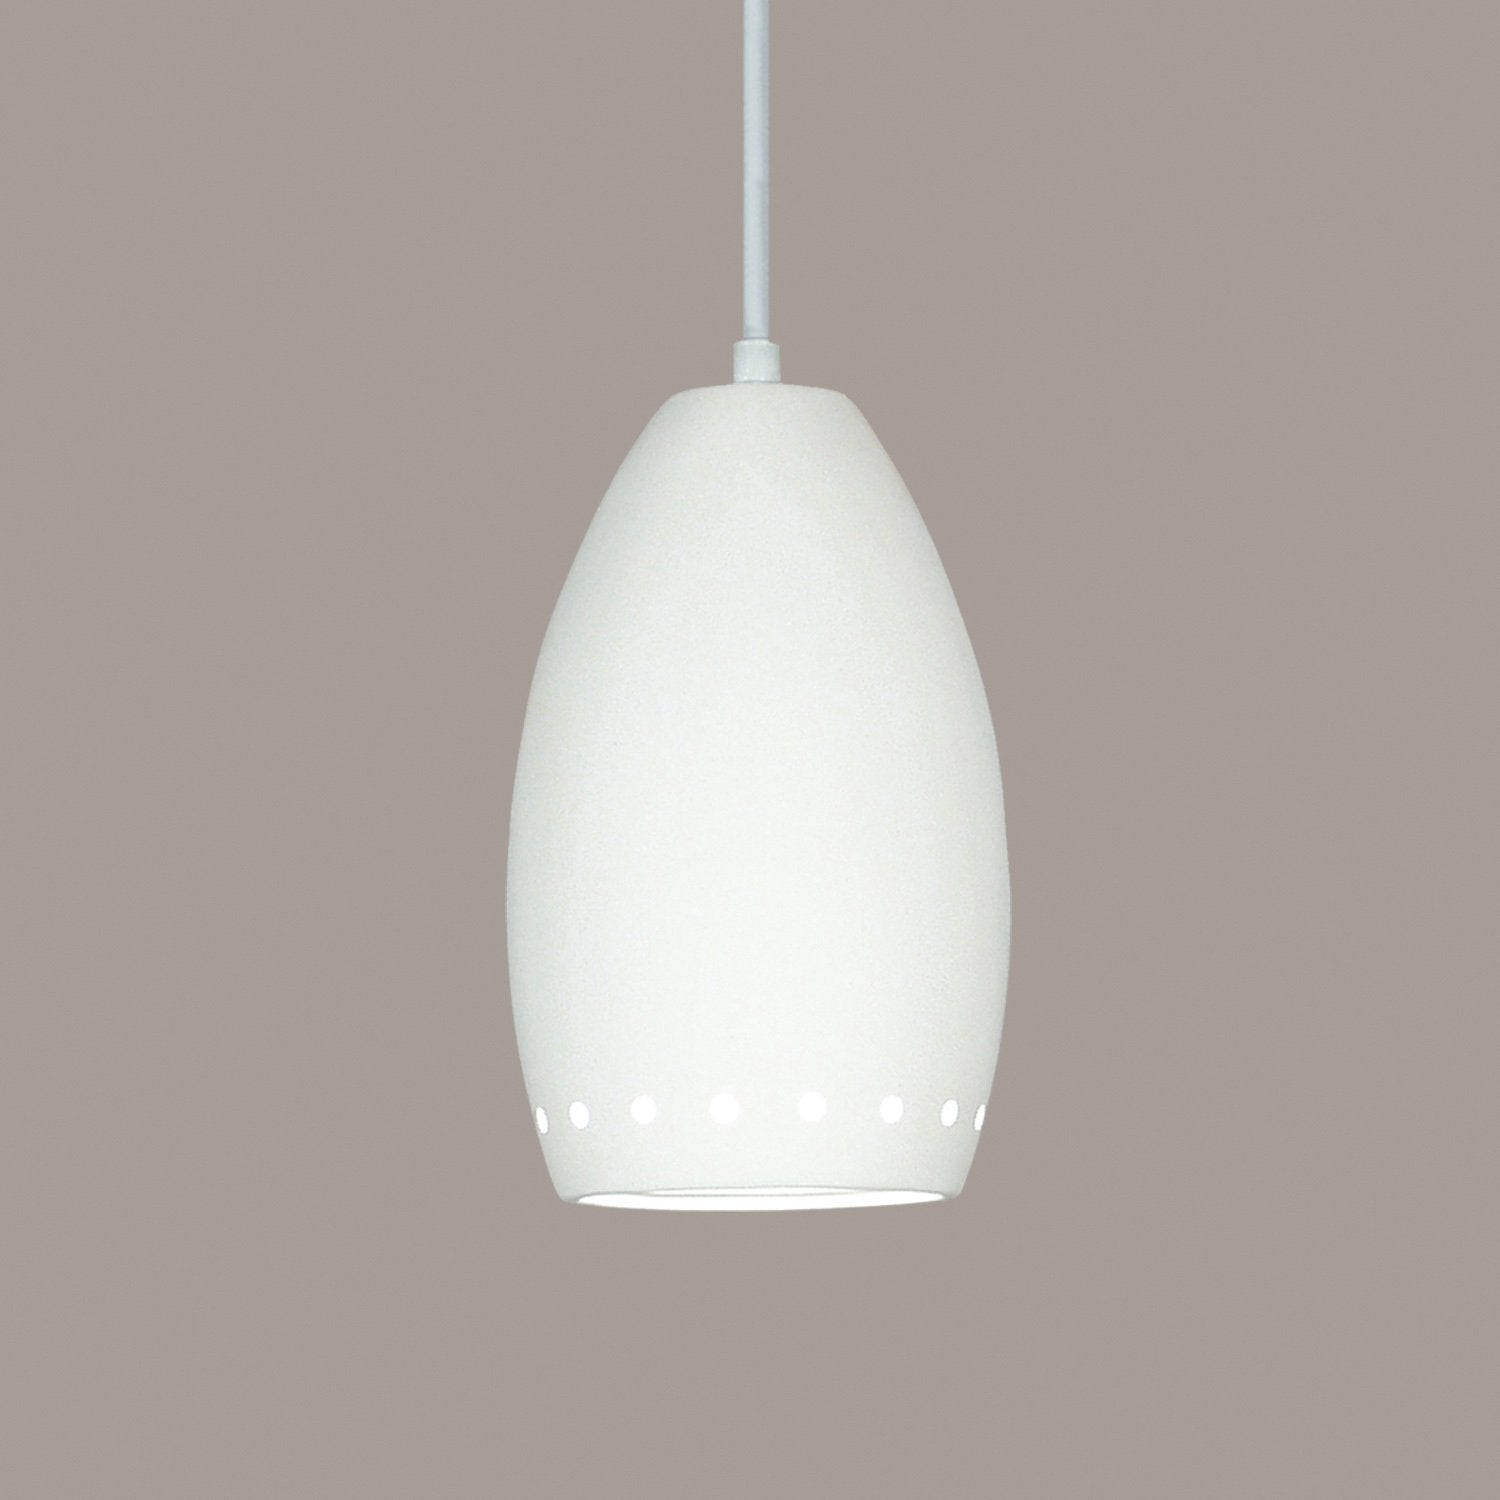 A19 P1503-A31-WCC Islands of Light Collection Grenada Satin White Finish Pendant